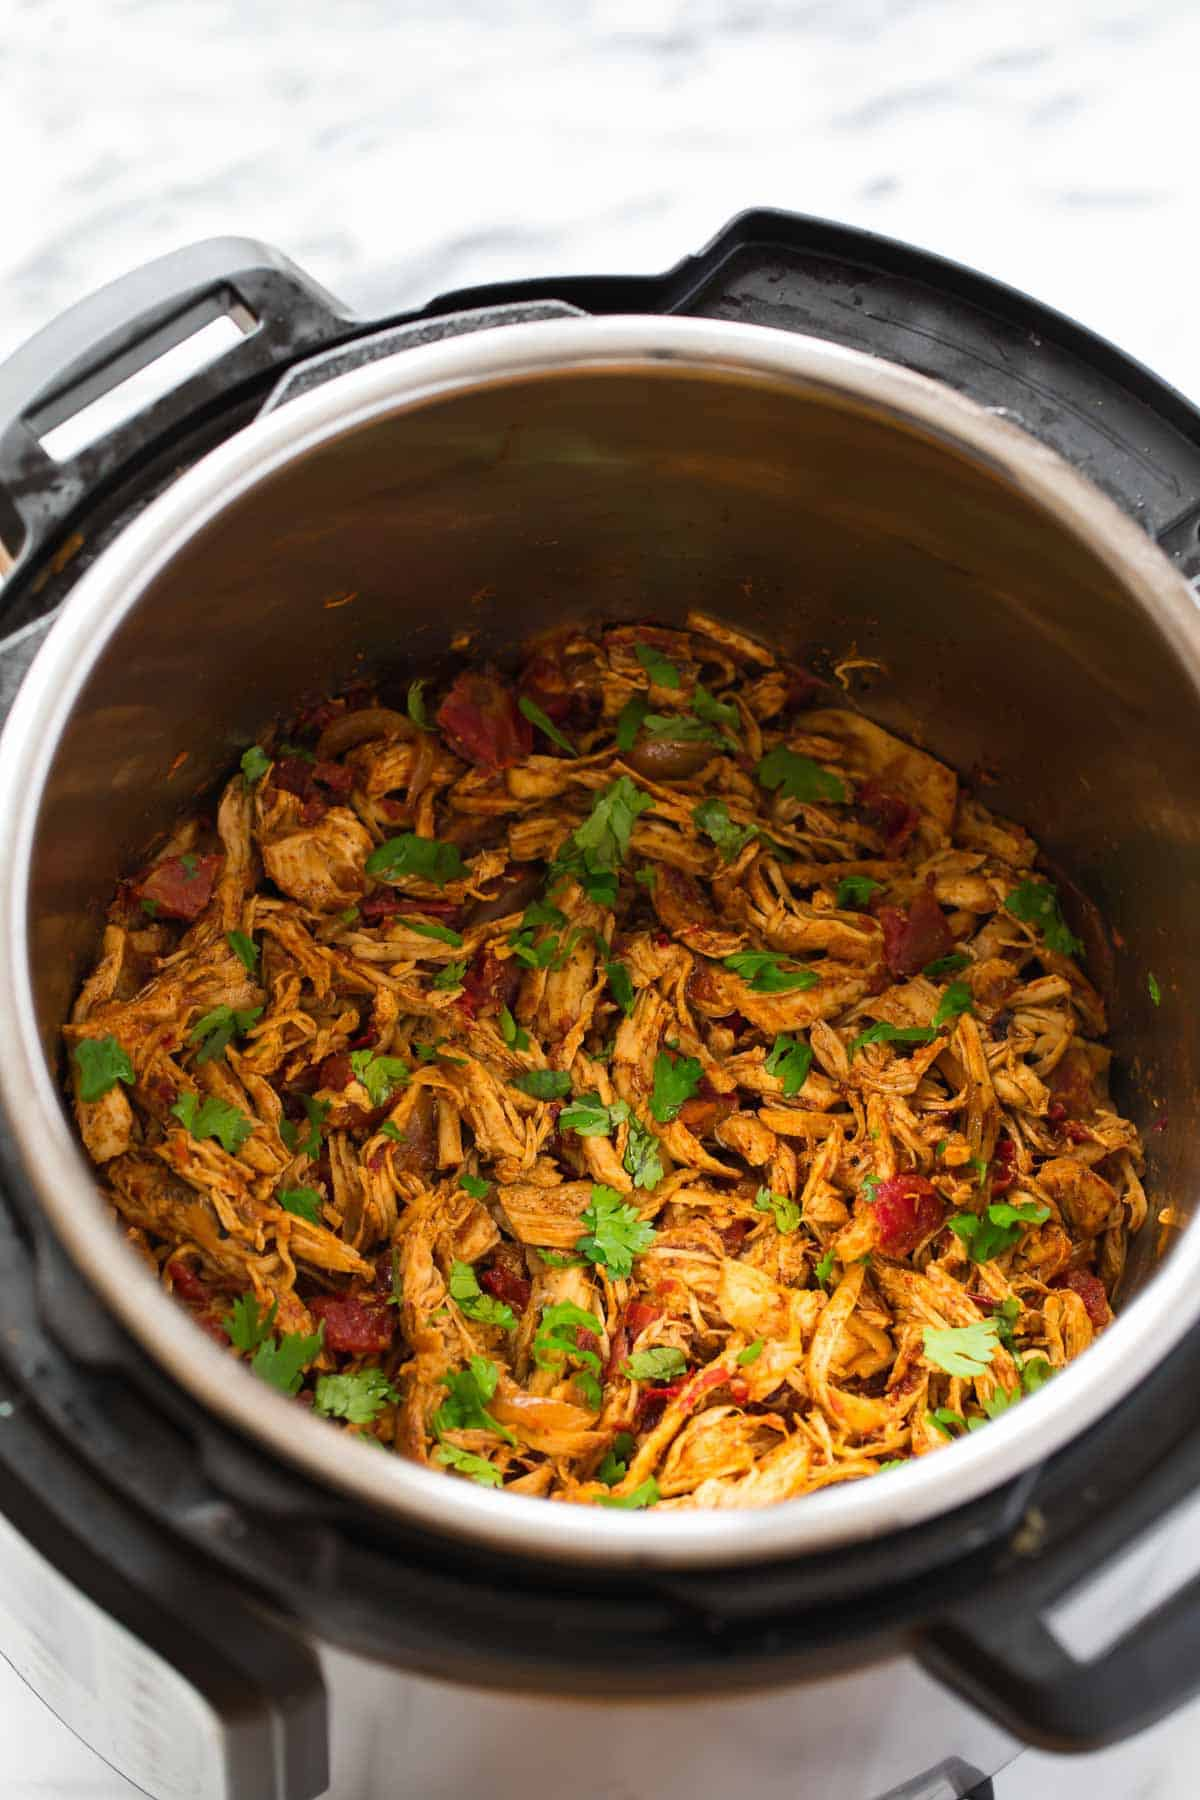 Shredded chicken cooked and seasoned in an Instant Pot for tacos.